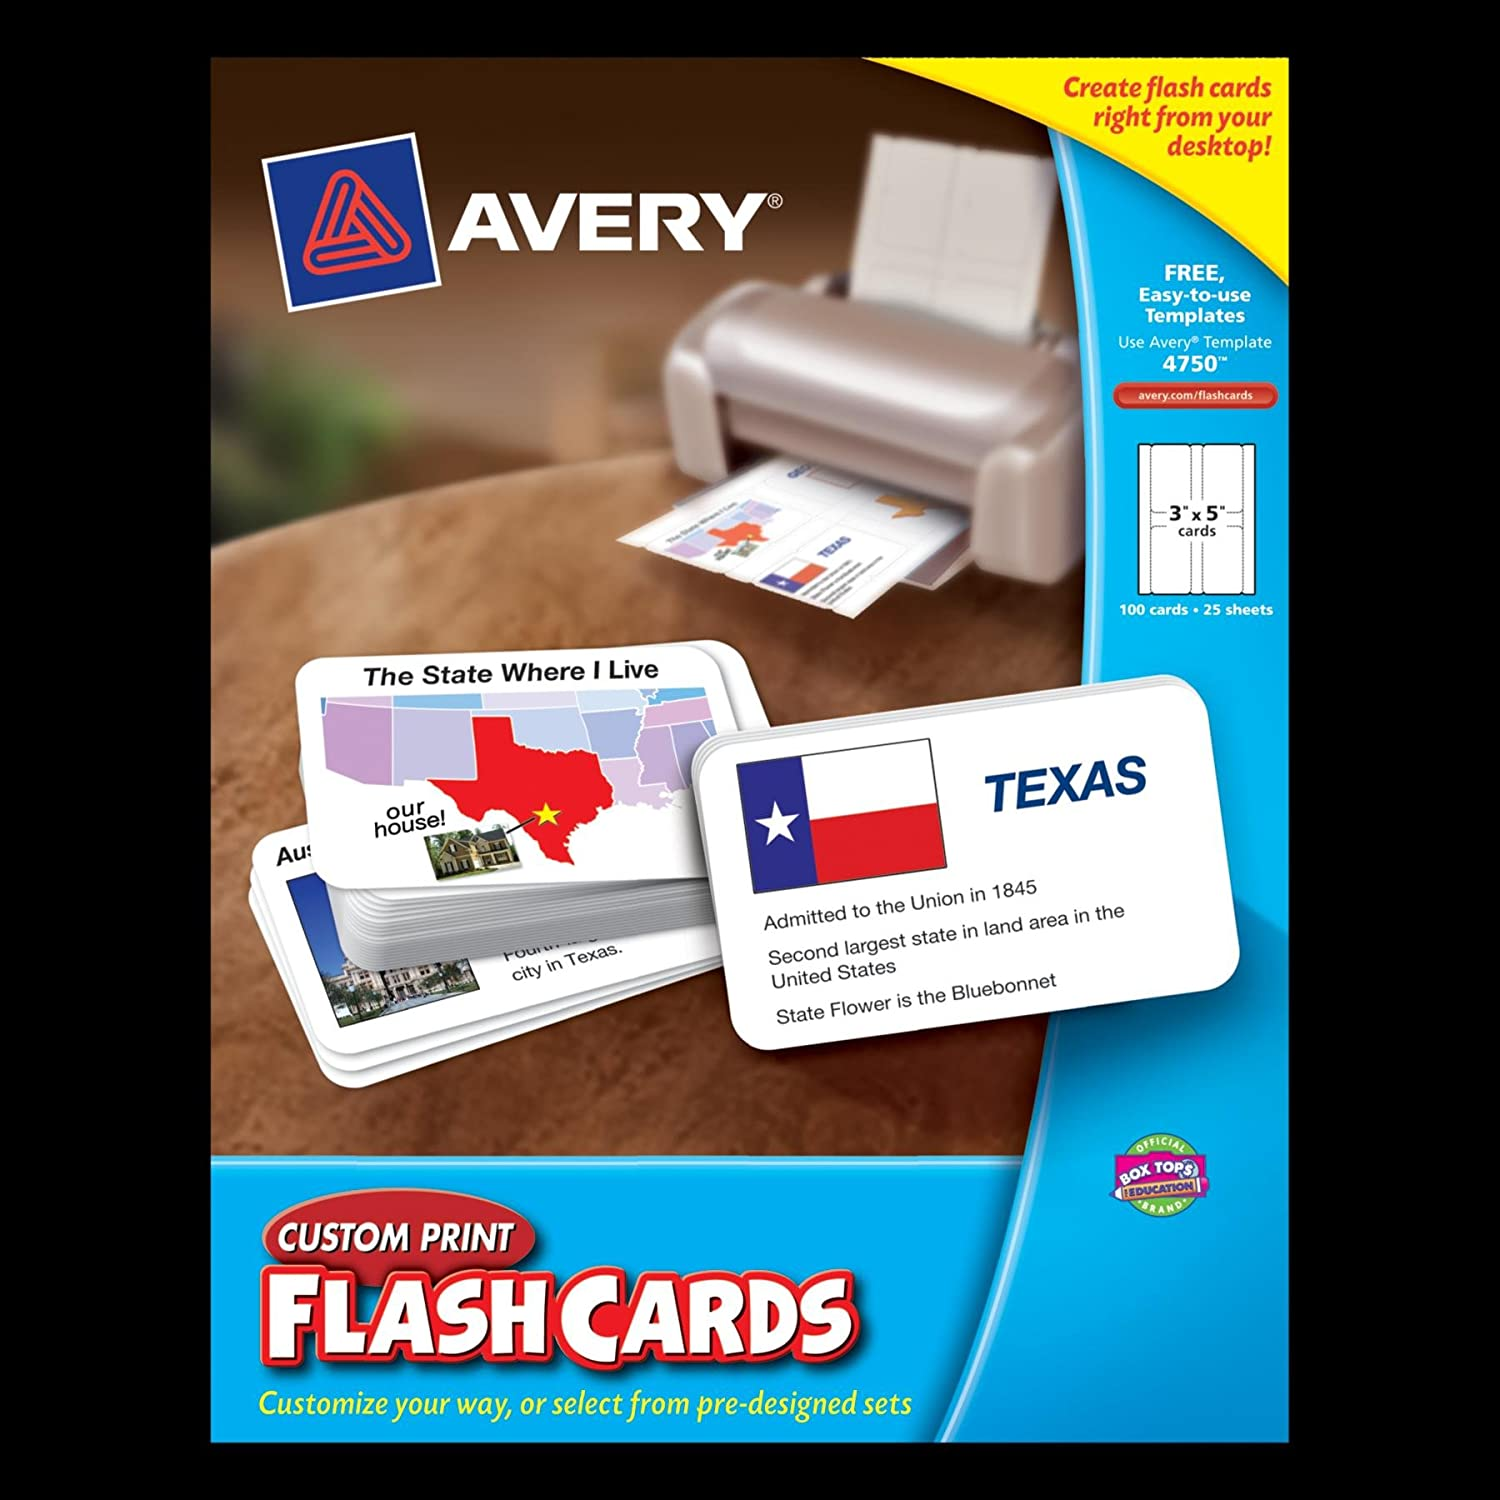 avery custom print flash cards 3 x 5 inches for